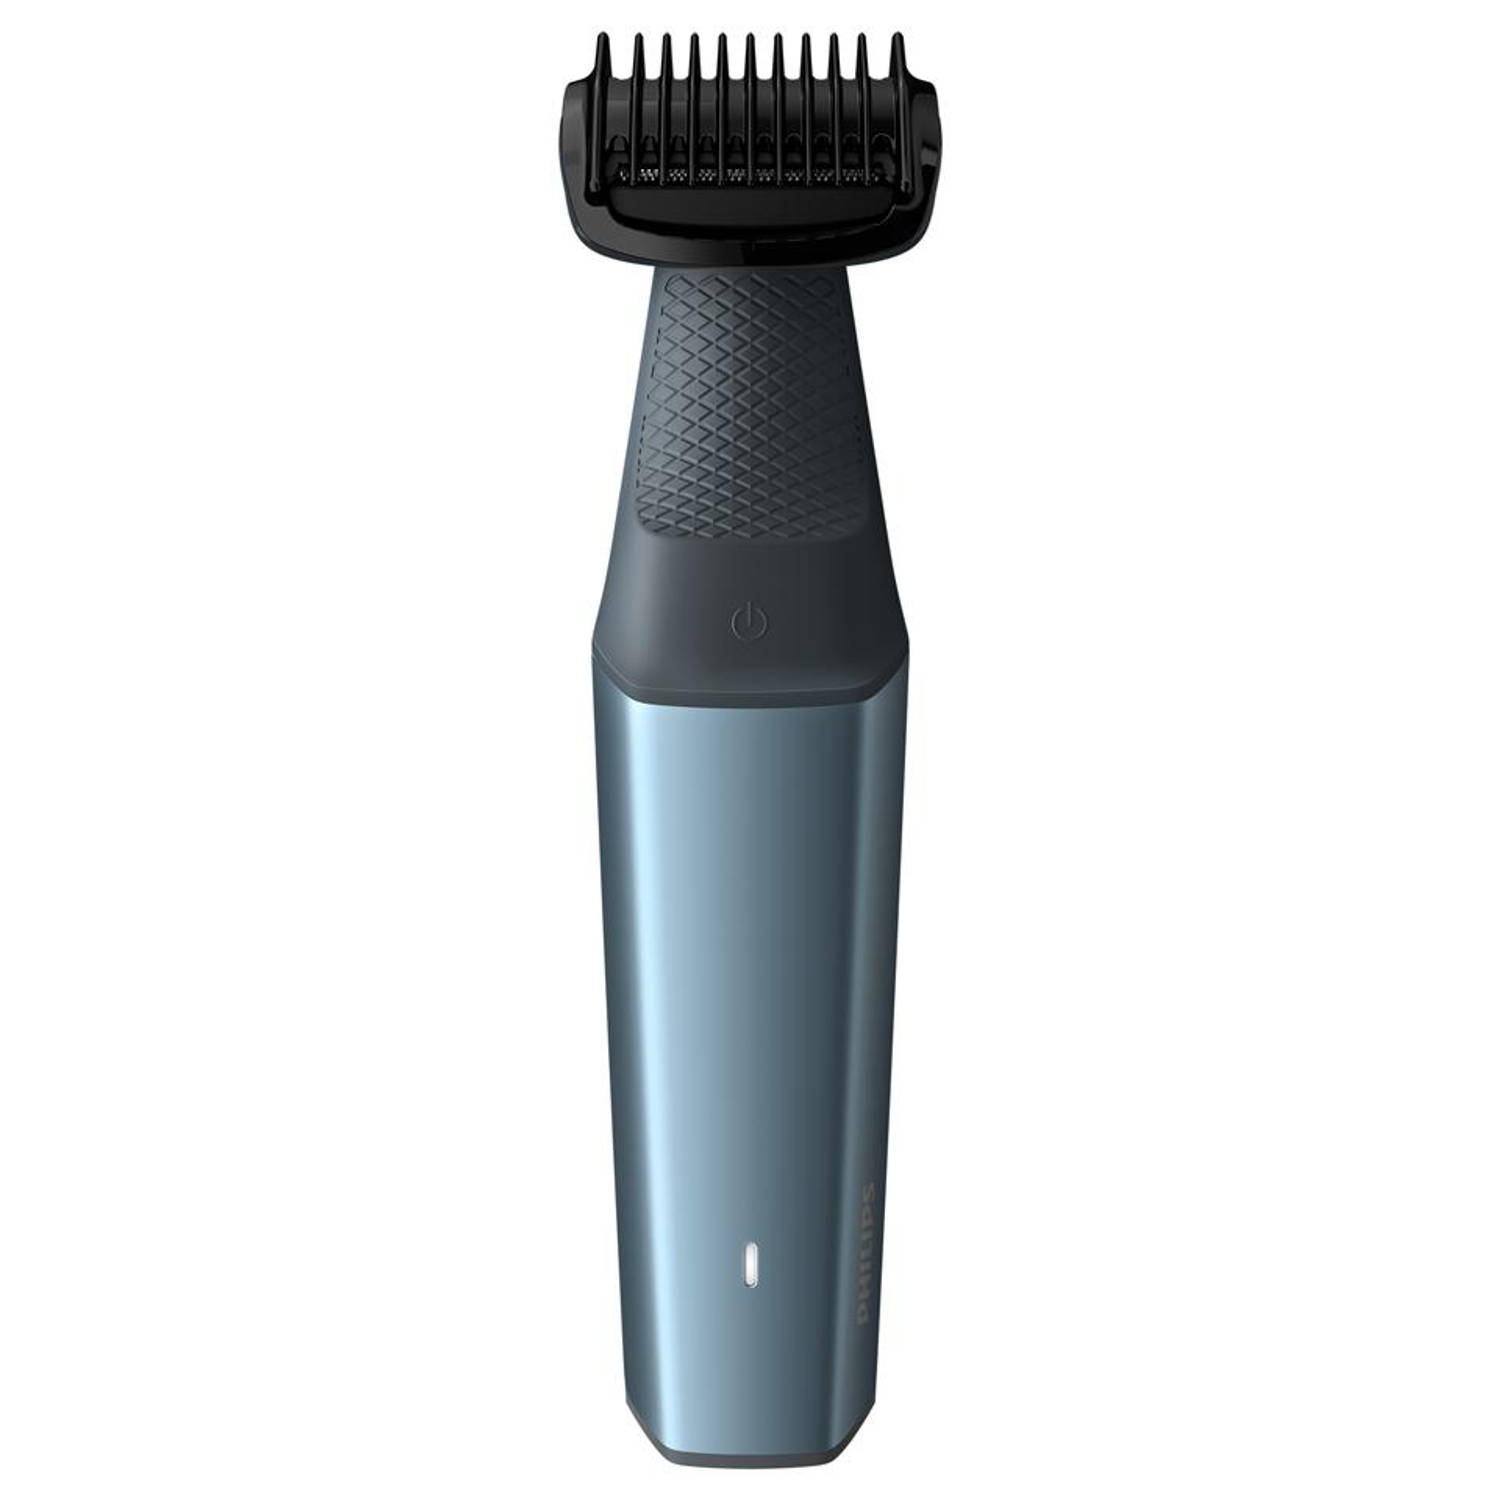 Philips bodygroomer 3000 series BG3015/15